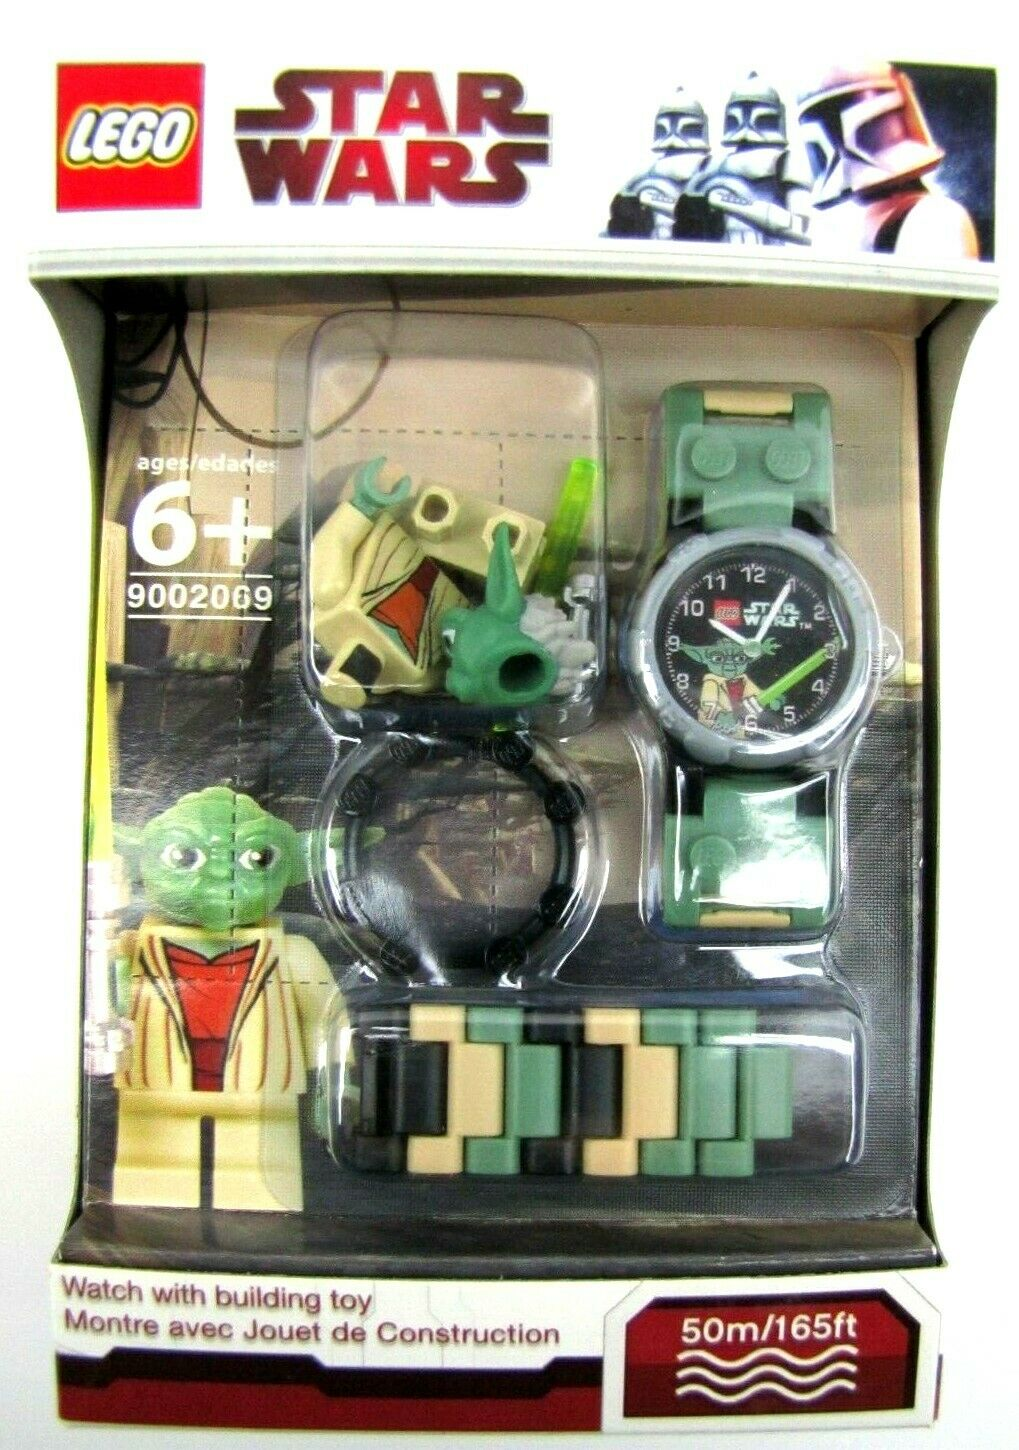 2010 Lego Star Wars Yoda Minifigure Watch NEW Lego Time 9002069